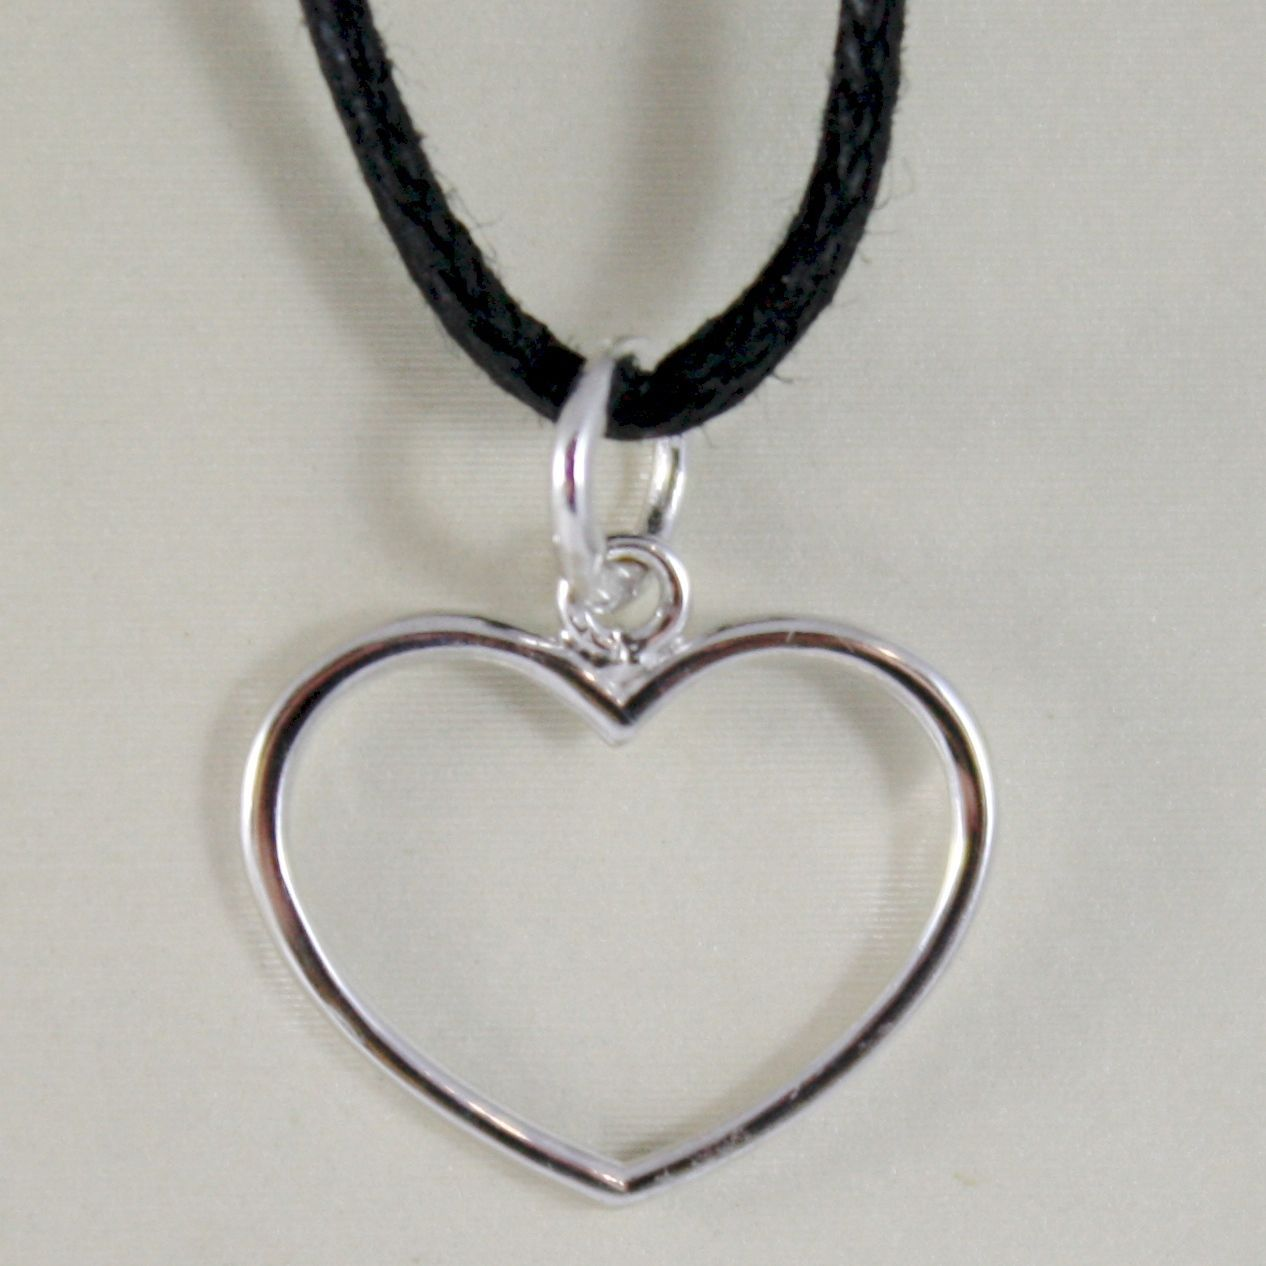 18K WHITE GOLD HEART PENDANT CHARM, 17 MM, LUMINOUS, BRIGHT, MADE IN ITALY